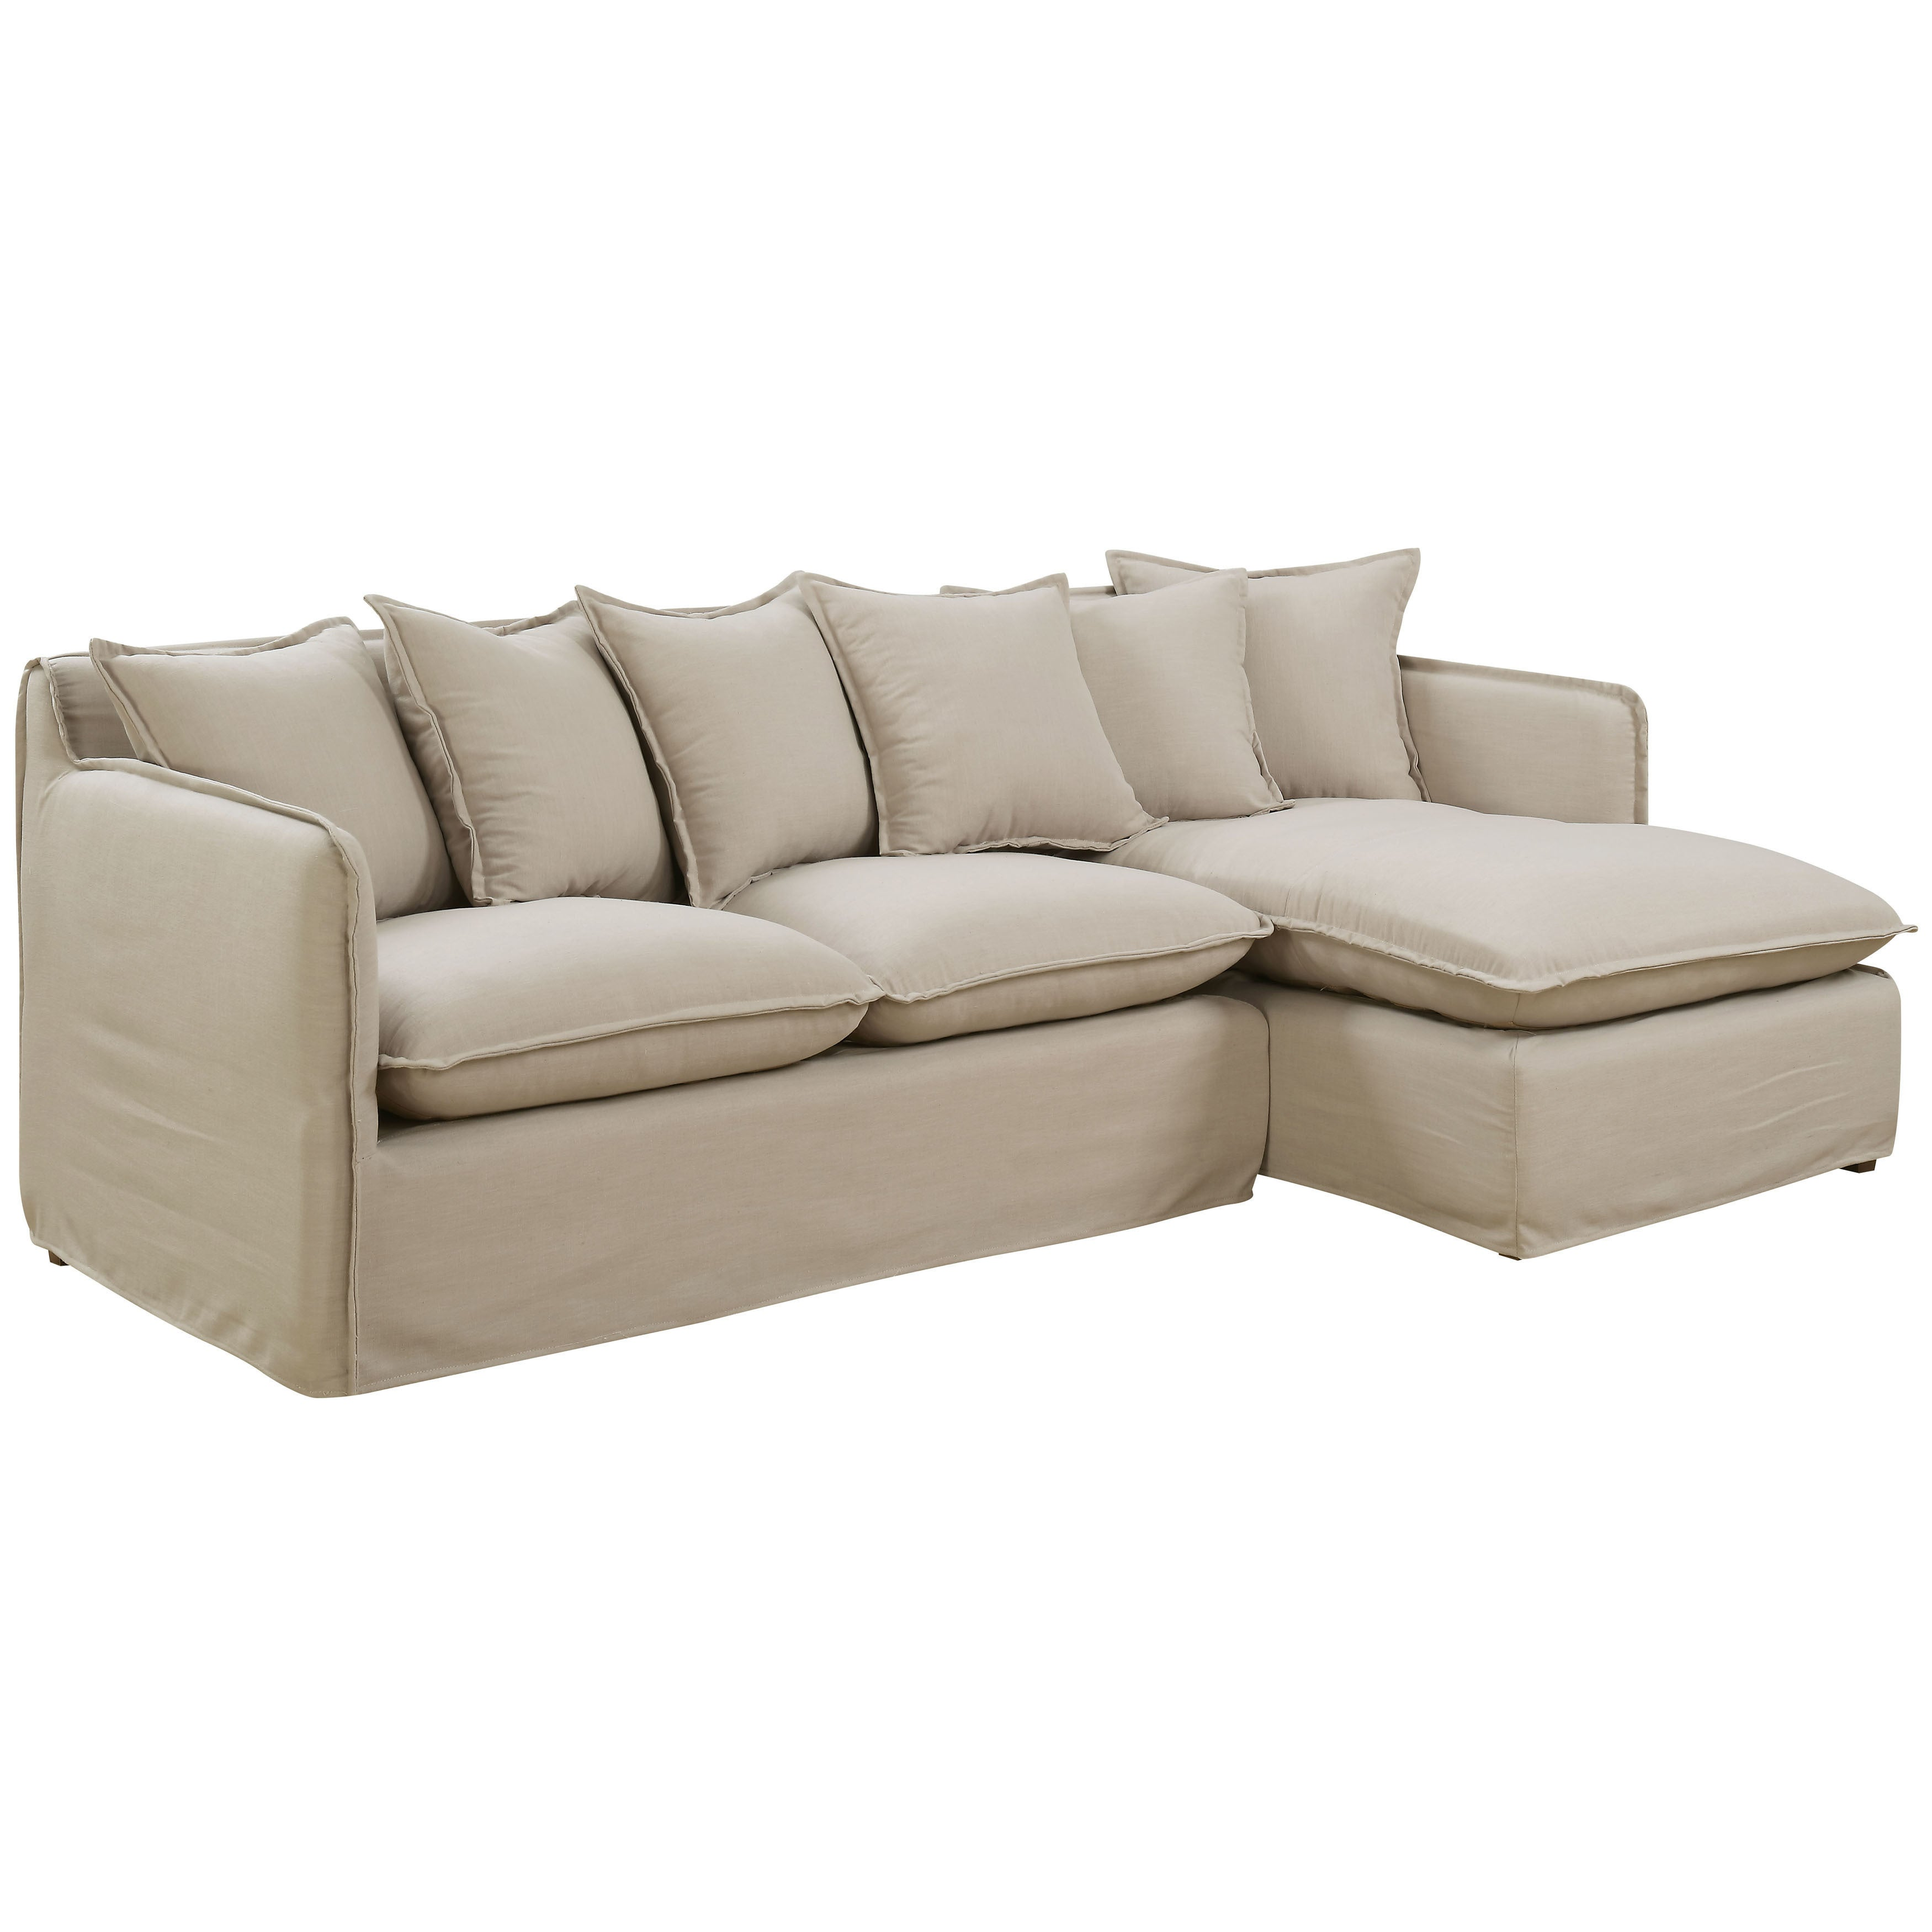 Shop Furniture Of America Telermon Classic Slipcover L Shaped Wooden  Sectional With Fabric Upholstery And Foam Filling   Free Shipping Today    Overstock.com ...